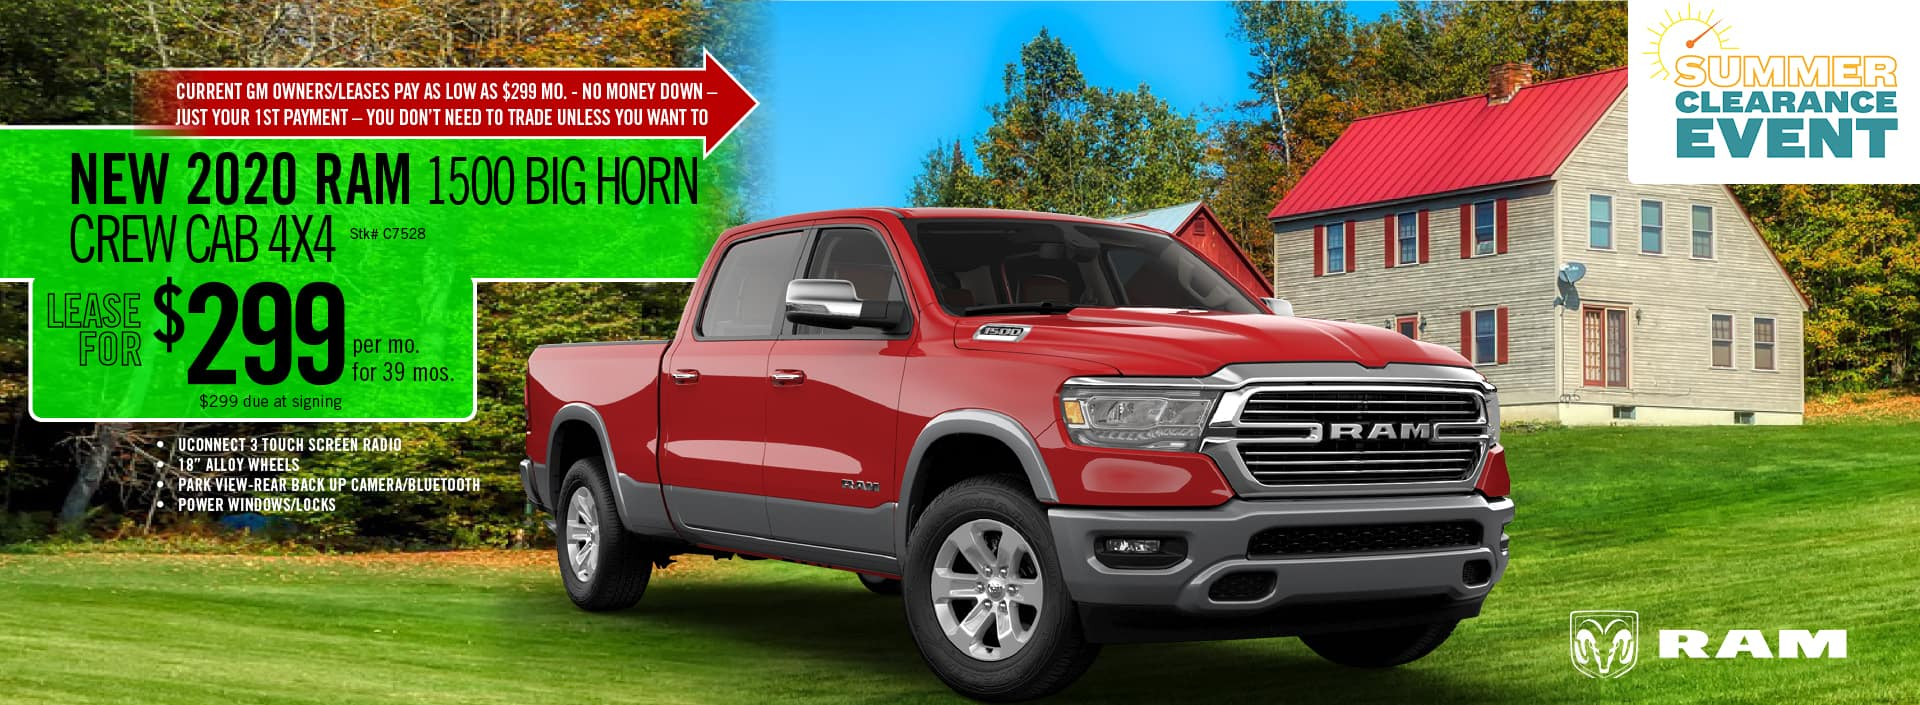 2020 RAM 1500 Big Horn Crew Cab lease deal $299 for 39 months | Barre, VT